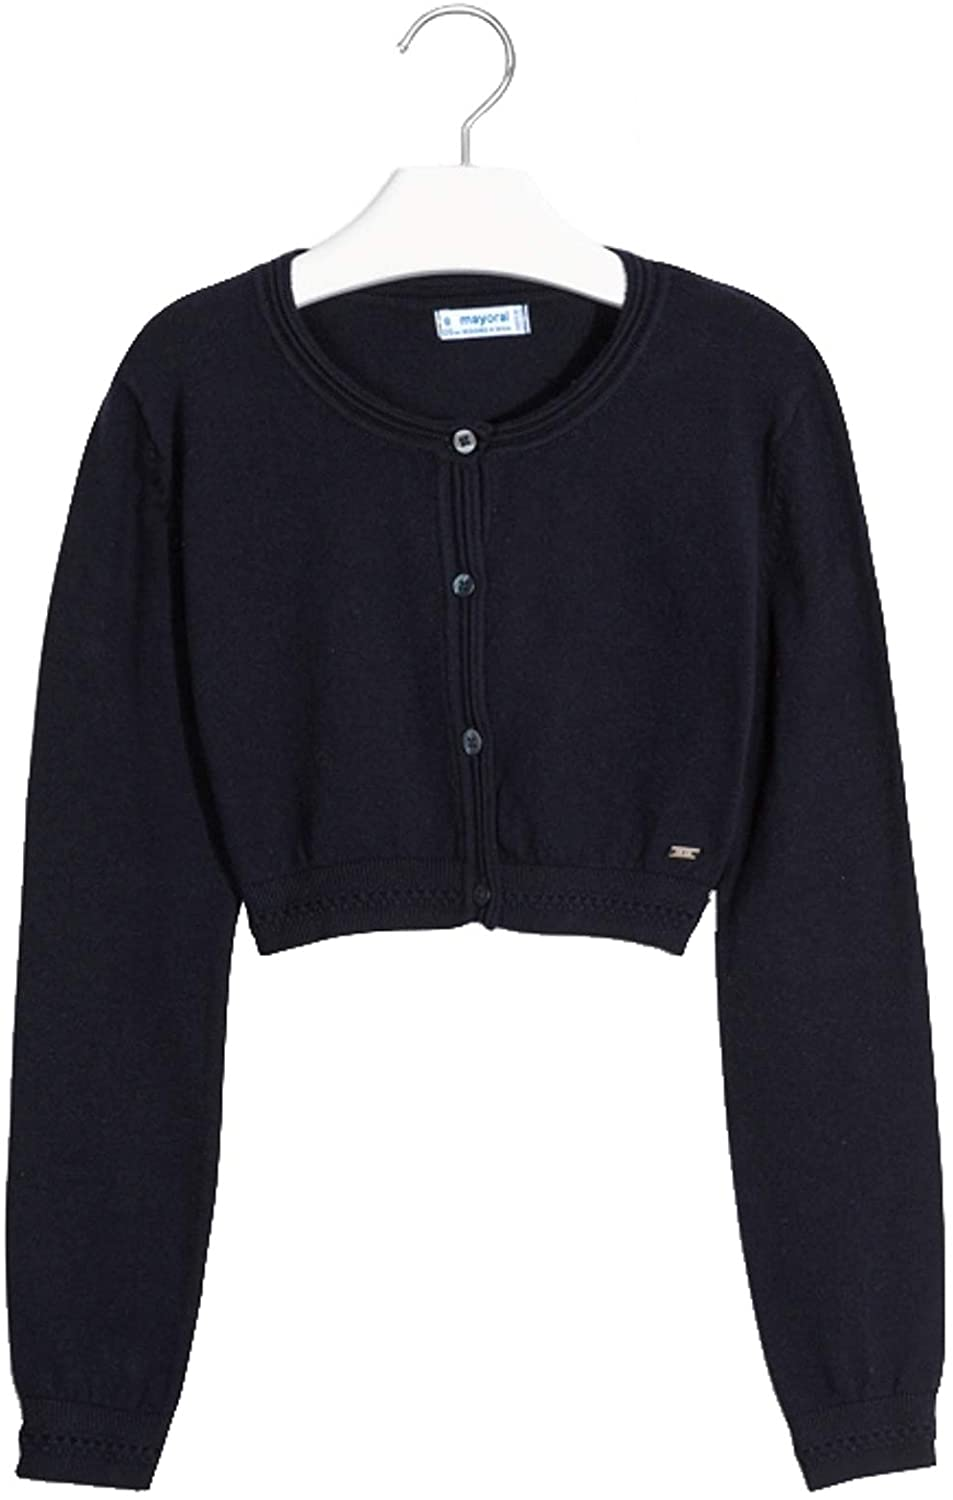 Mayoral - Basic Knitted Cardigan for Girls - 0326, Navy